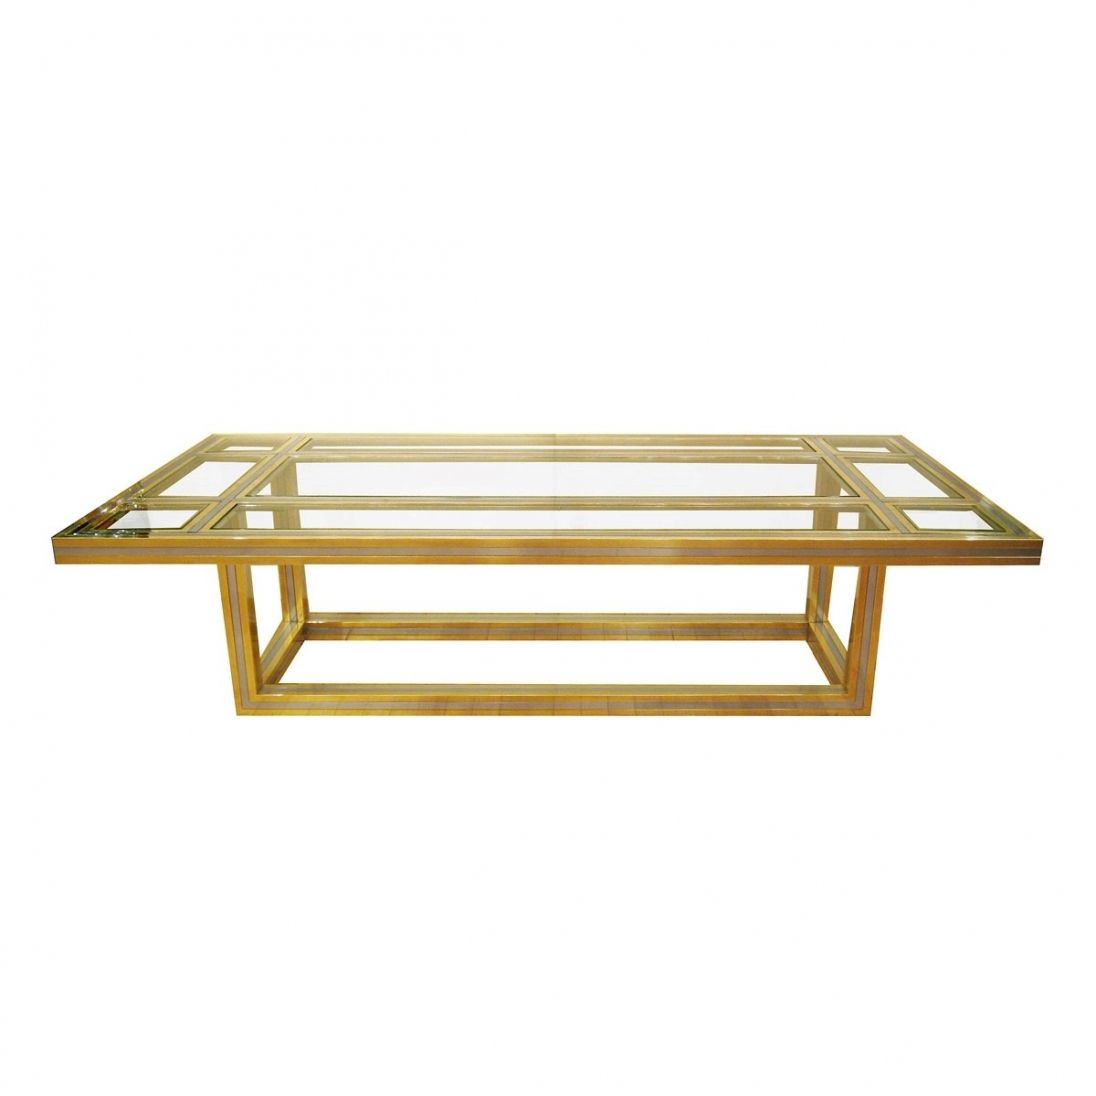 Glass Coffee Table Bronze Best Interior House Paint Check More At Http Www Buzzfolders Com Gla Coffee Table Coffee Table Frame Stainless Steel Coffee Table